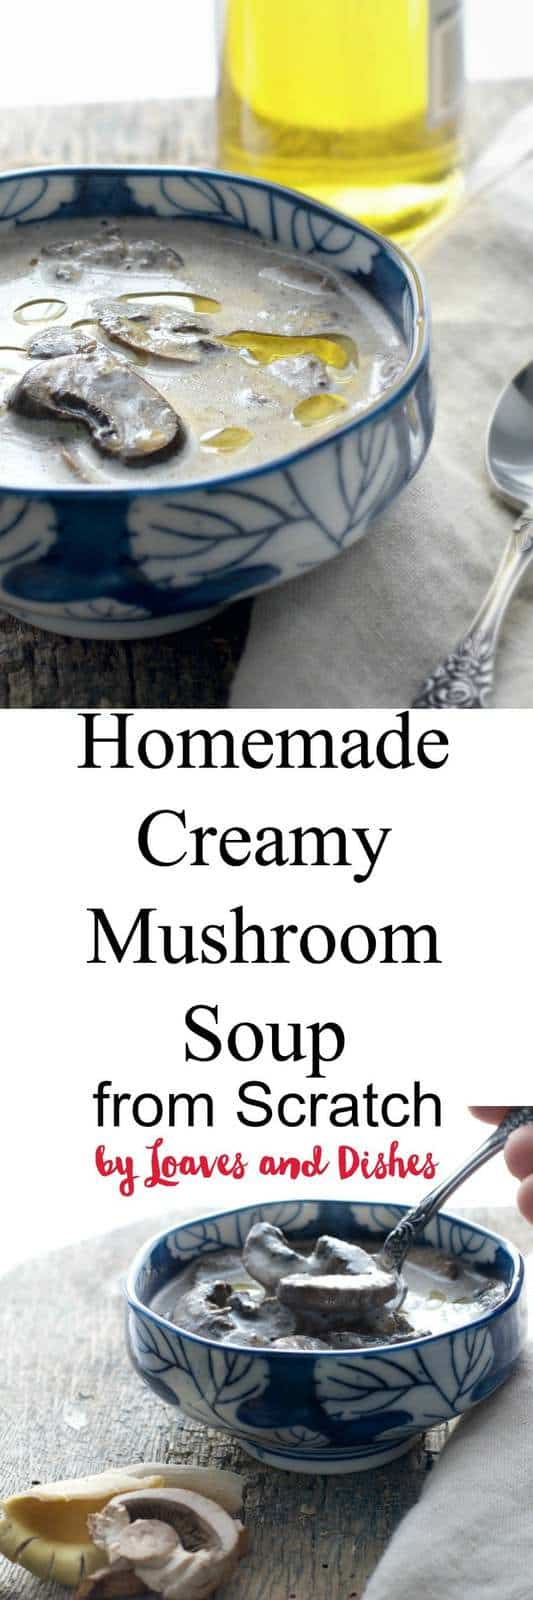 Delicious, creamy and luscious homemade Creamy Mushroom Soup from Scratch. Easy. No need to rely on canned soups. Great cold weather food!